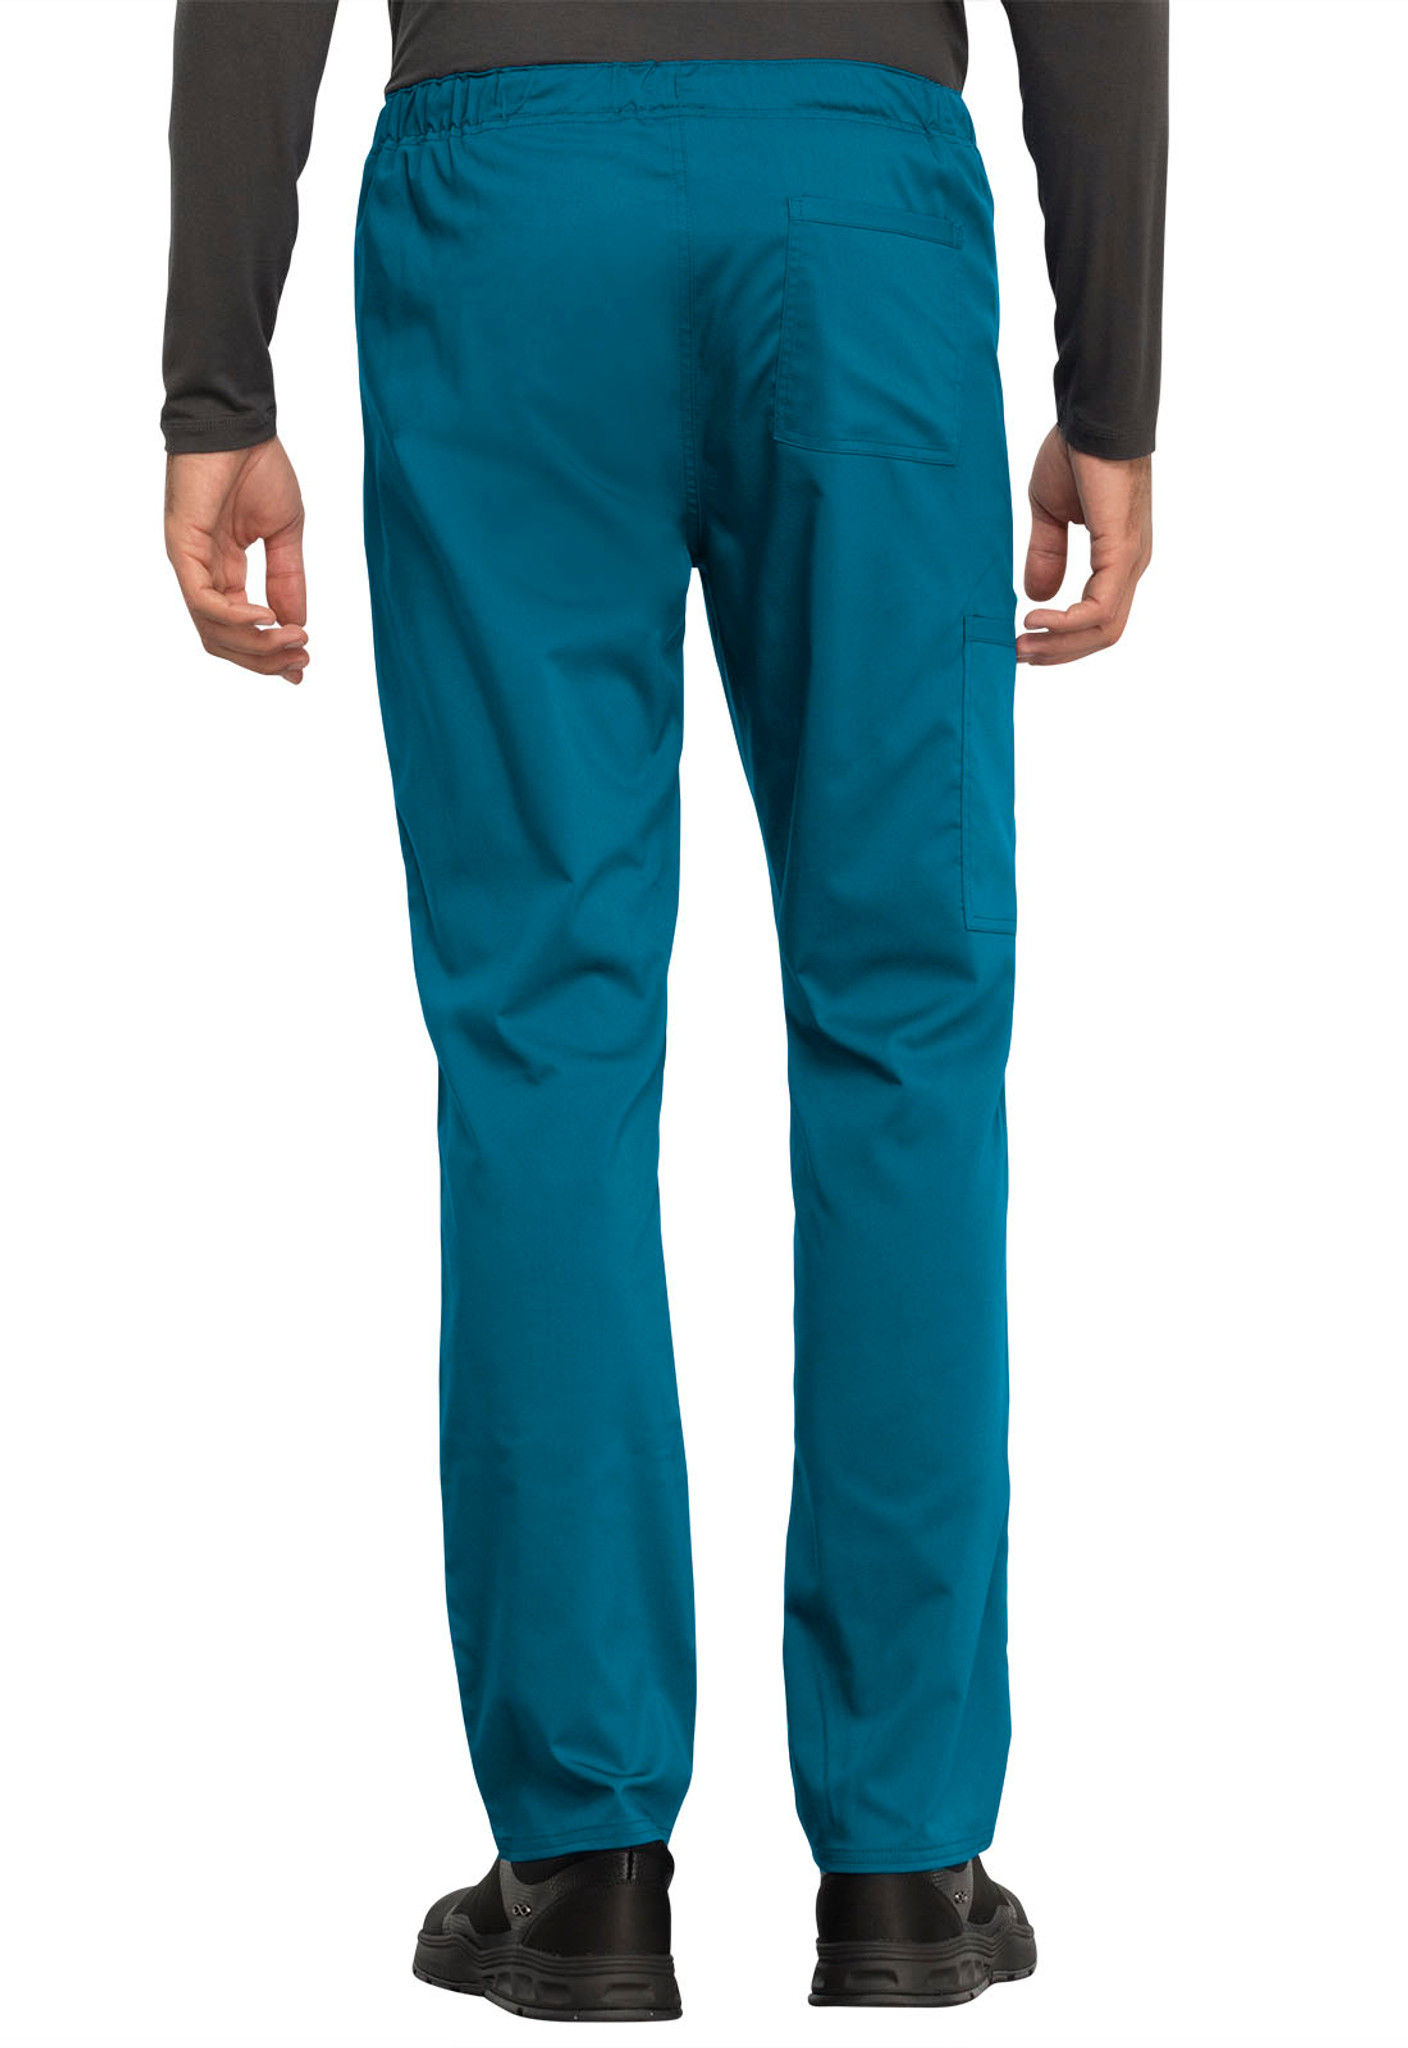 Workwear Revolution WW020 Unisex Unisex Tapered Leg Scrub Pant by Cherokee